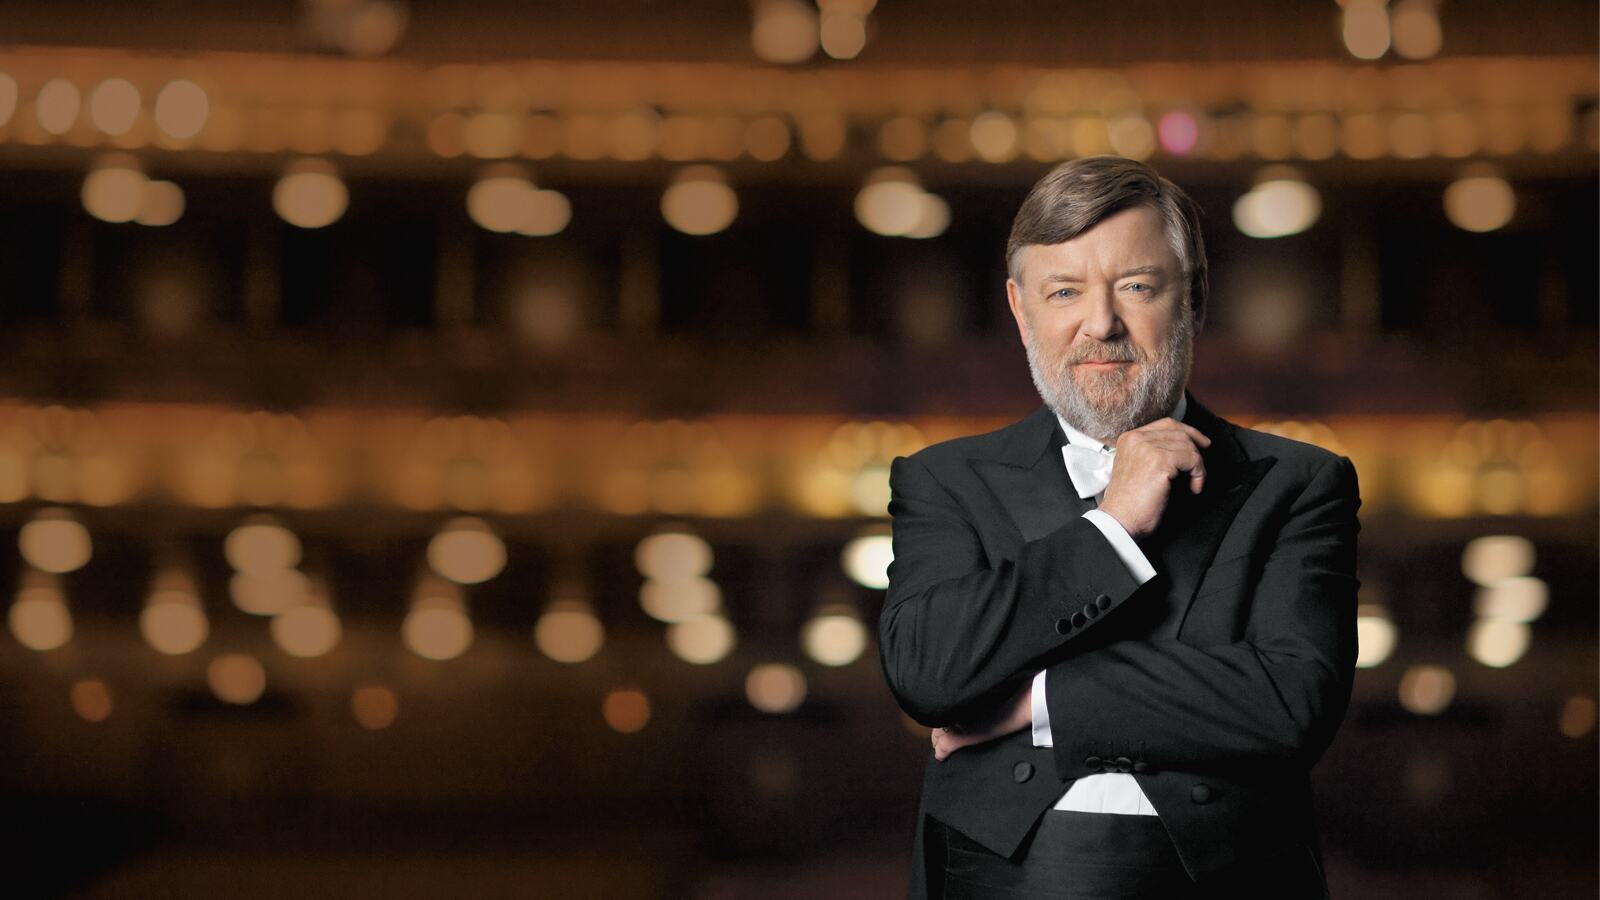 Sir Andrew Davis, conductor